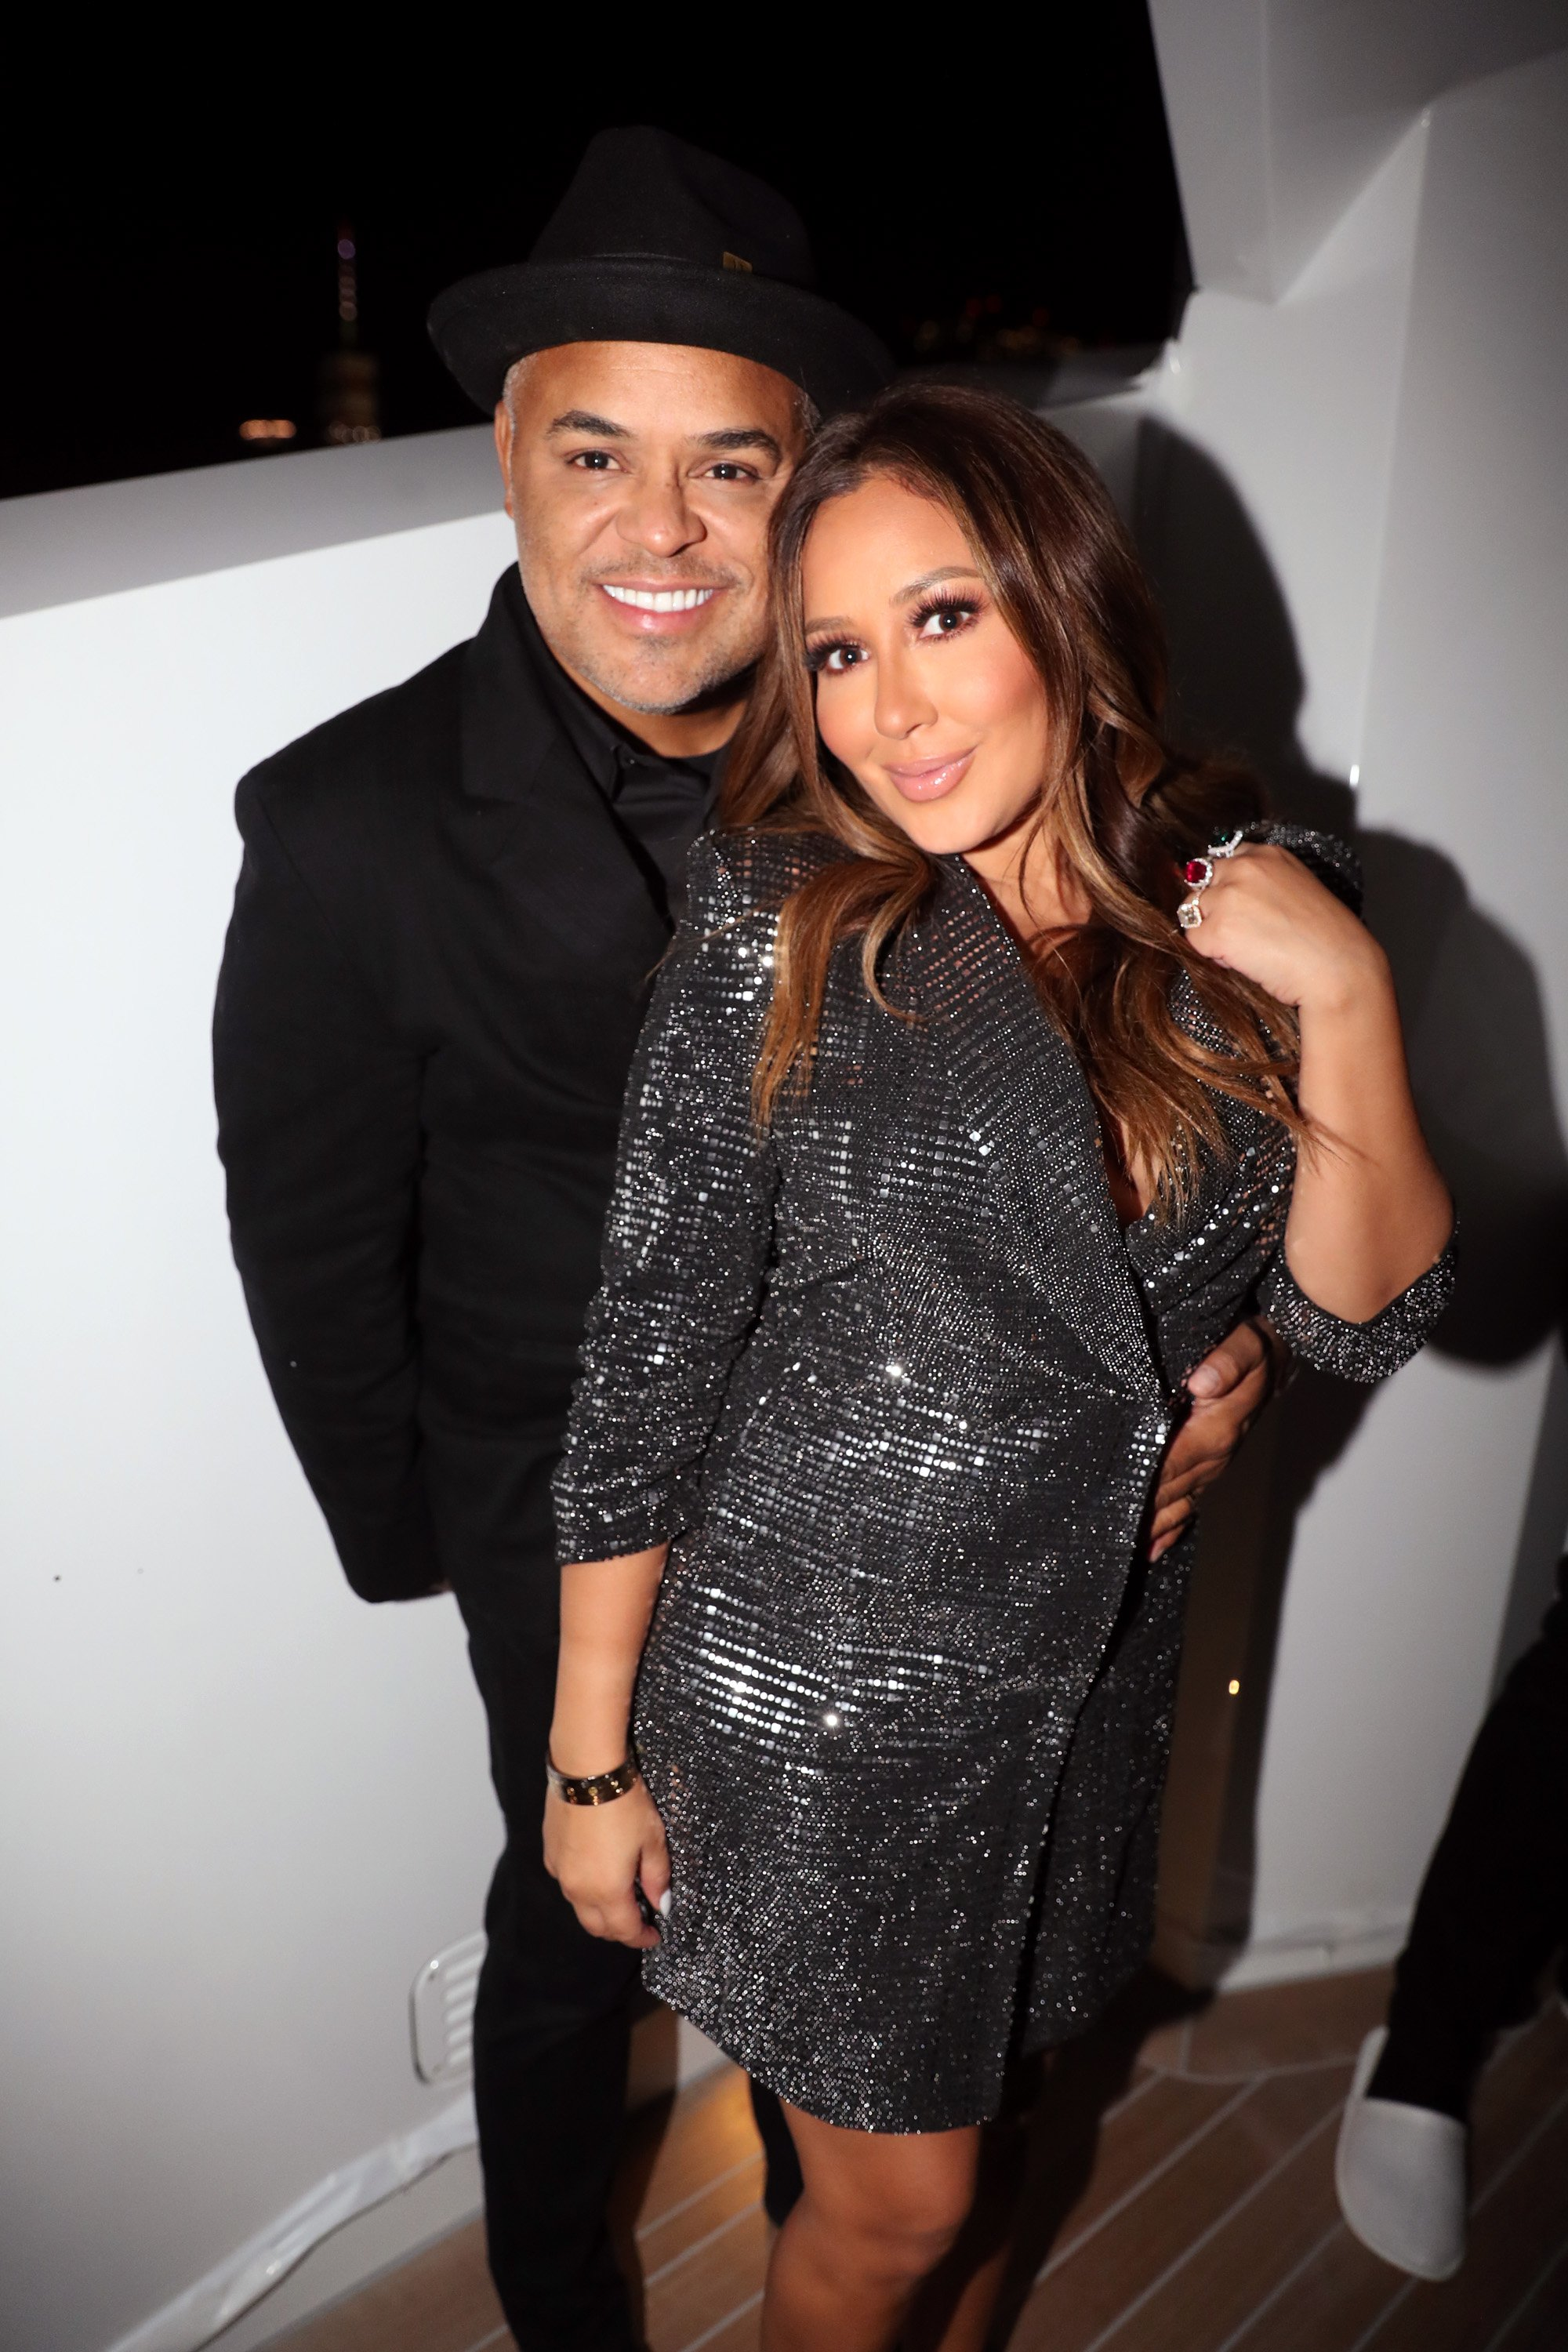 Israel Houghton and Adrienne Bailon at the Lumiere De Vie Hommes Launch Event Aboard Superyacht Utopia IV on October 13, 2018 | Photo: GettyImages